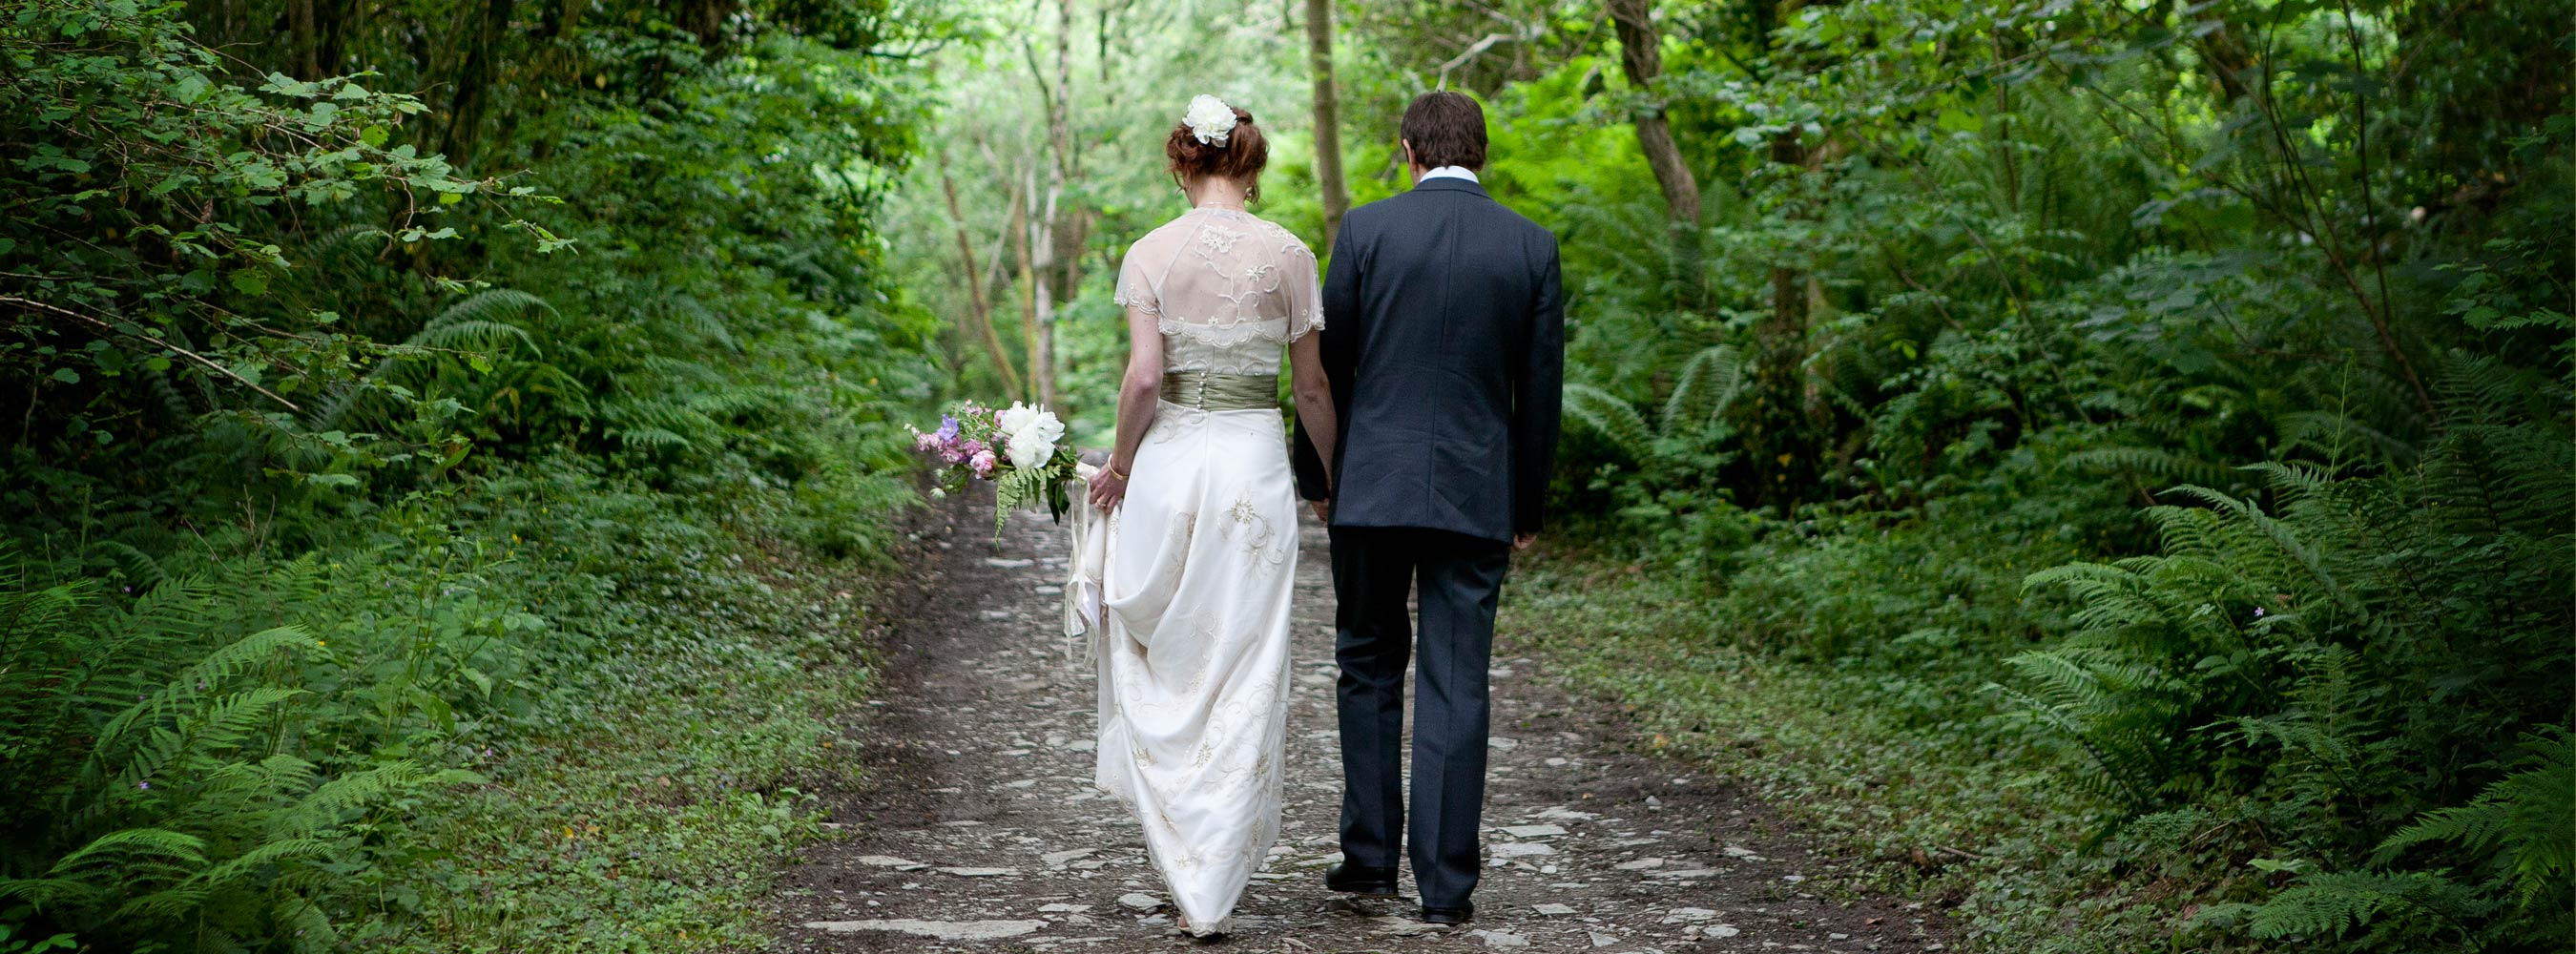 Edwardian Bride Woodland Path